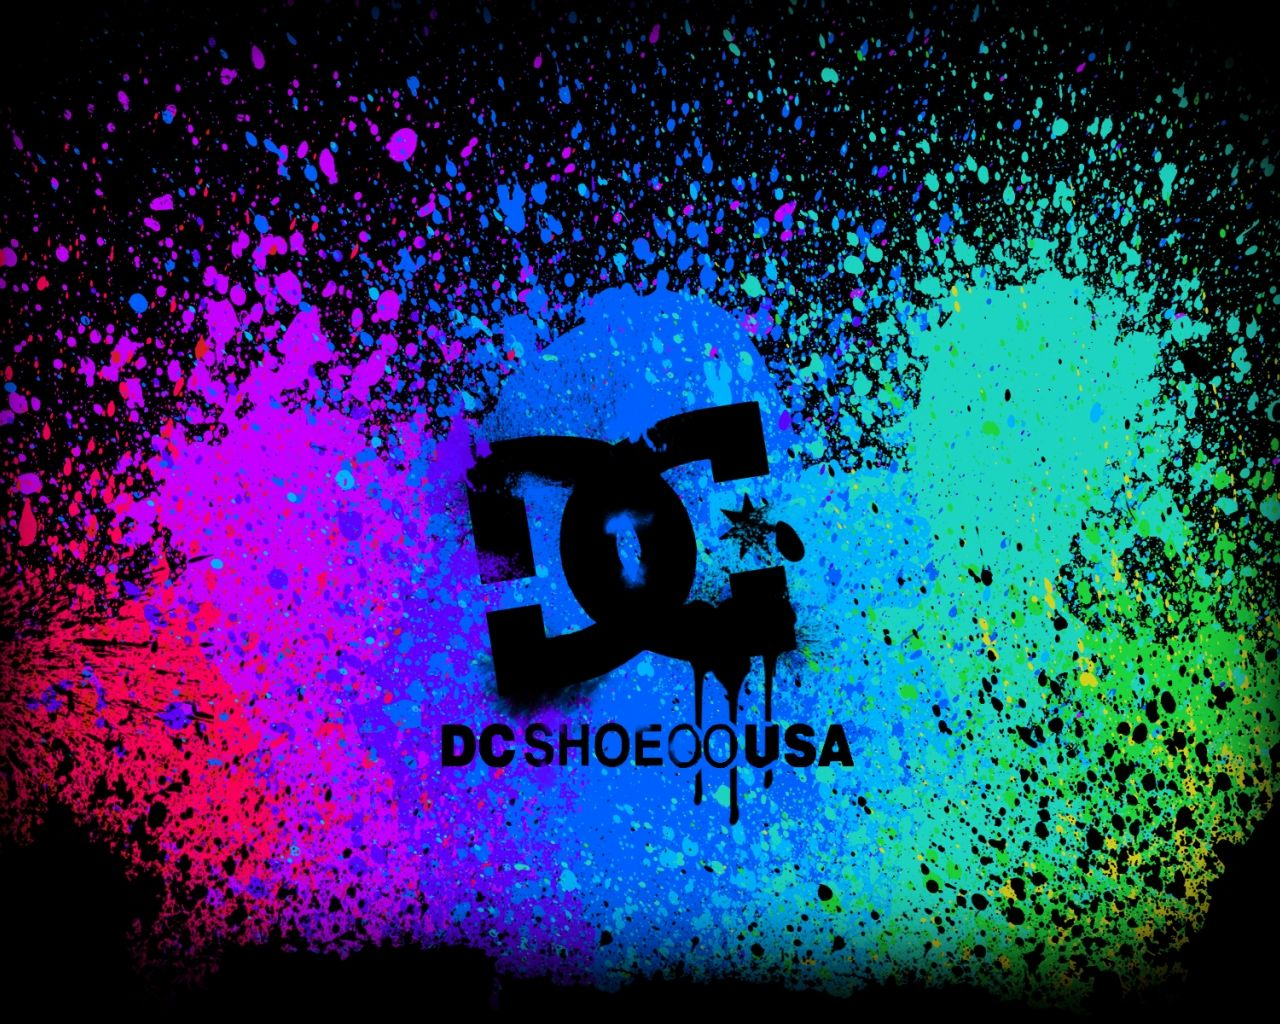 1280x1024 Free download HD Dc Shoes Logo Wallpapers [1600x1200] for your ...